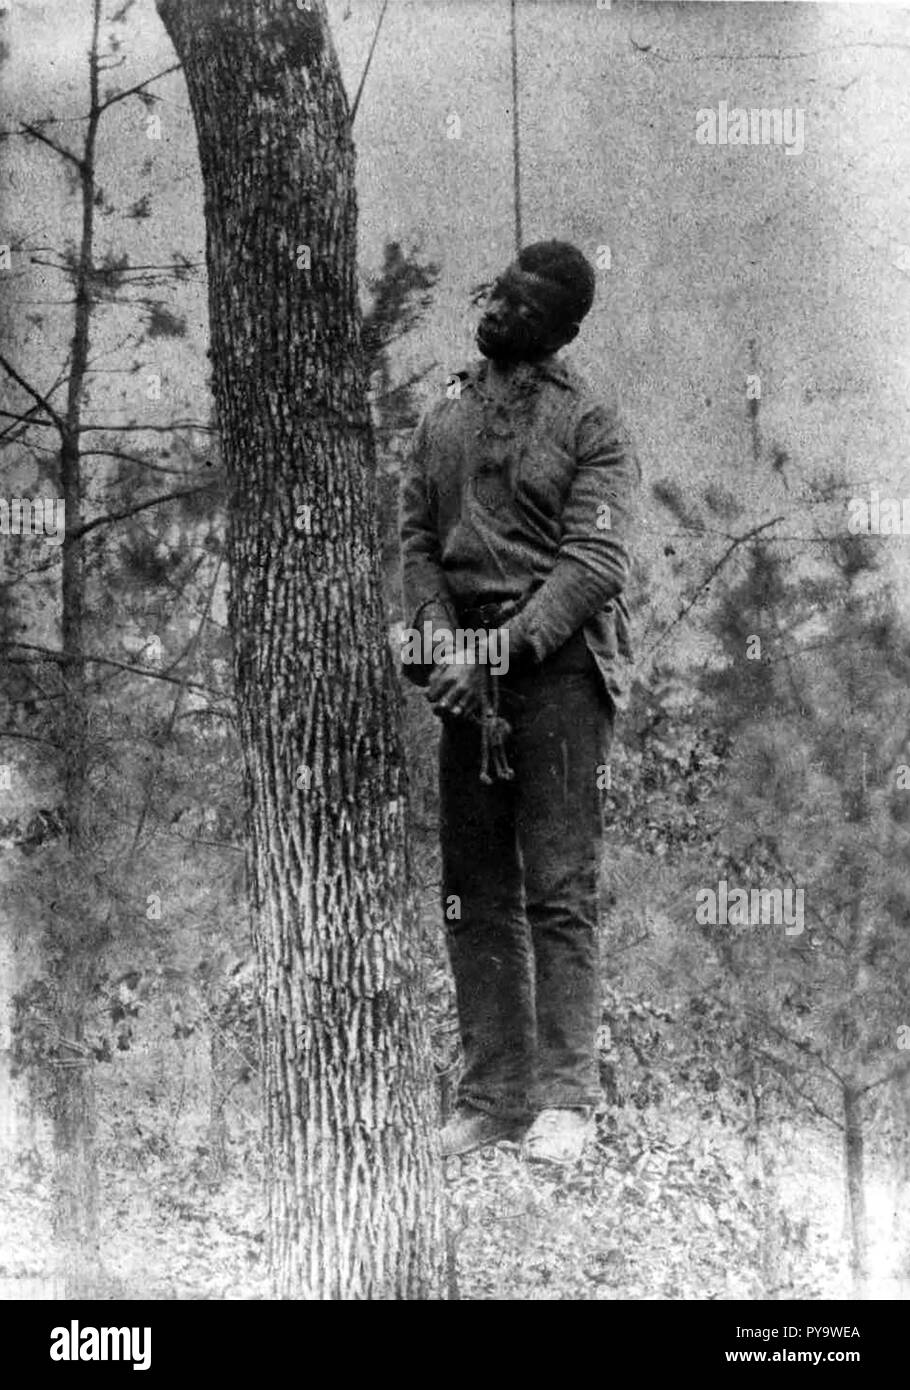 GEORGE MEADOWS Afro-American lynched near the Pratt Mines in Jefferson County, Alabama, 15 January 1889 - Stock Image